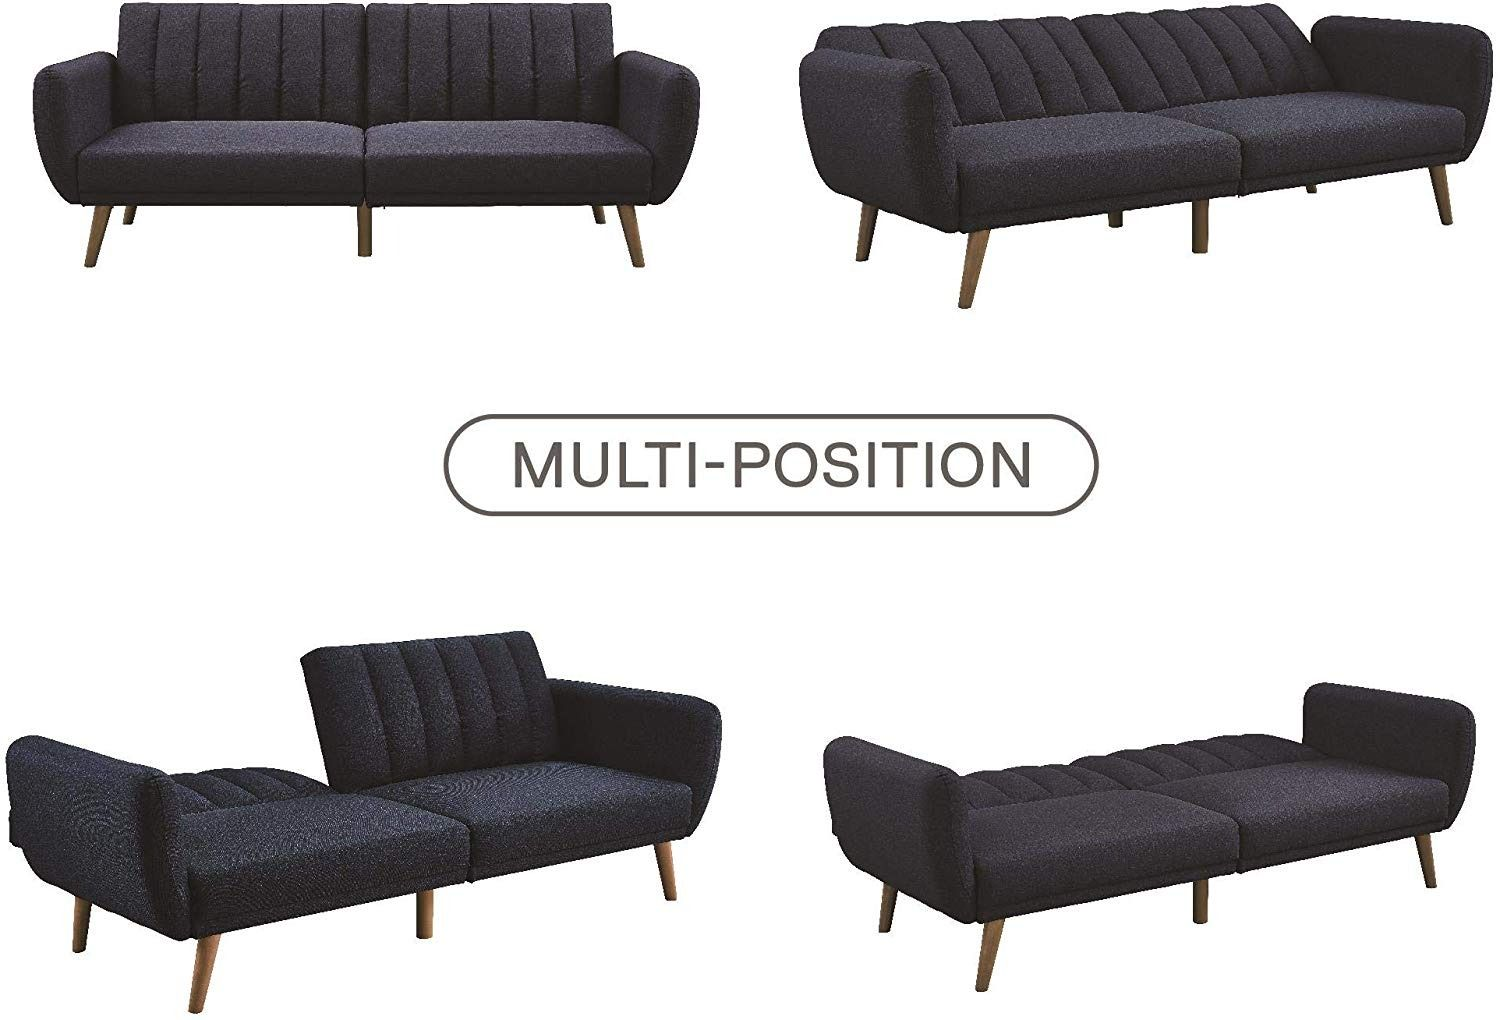 Best Sofa bed Sleeper Sofa at amazing price! in 2020